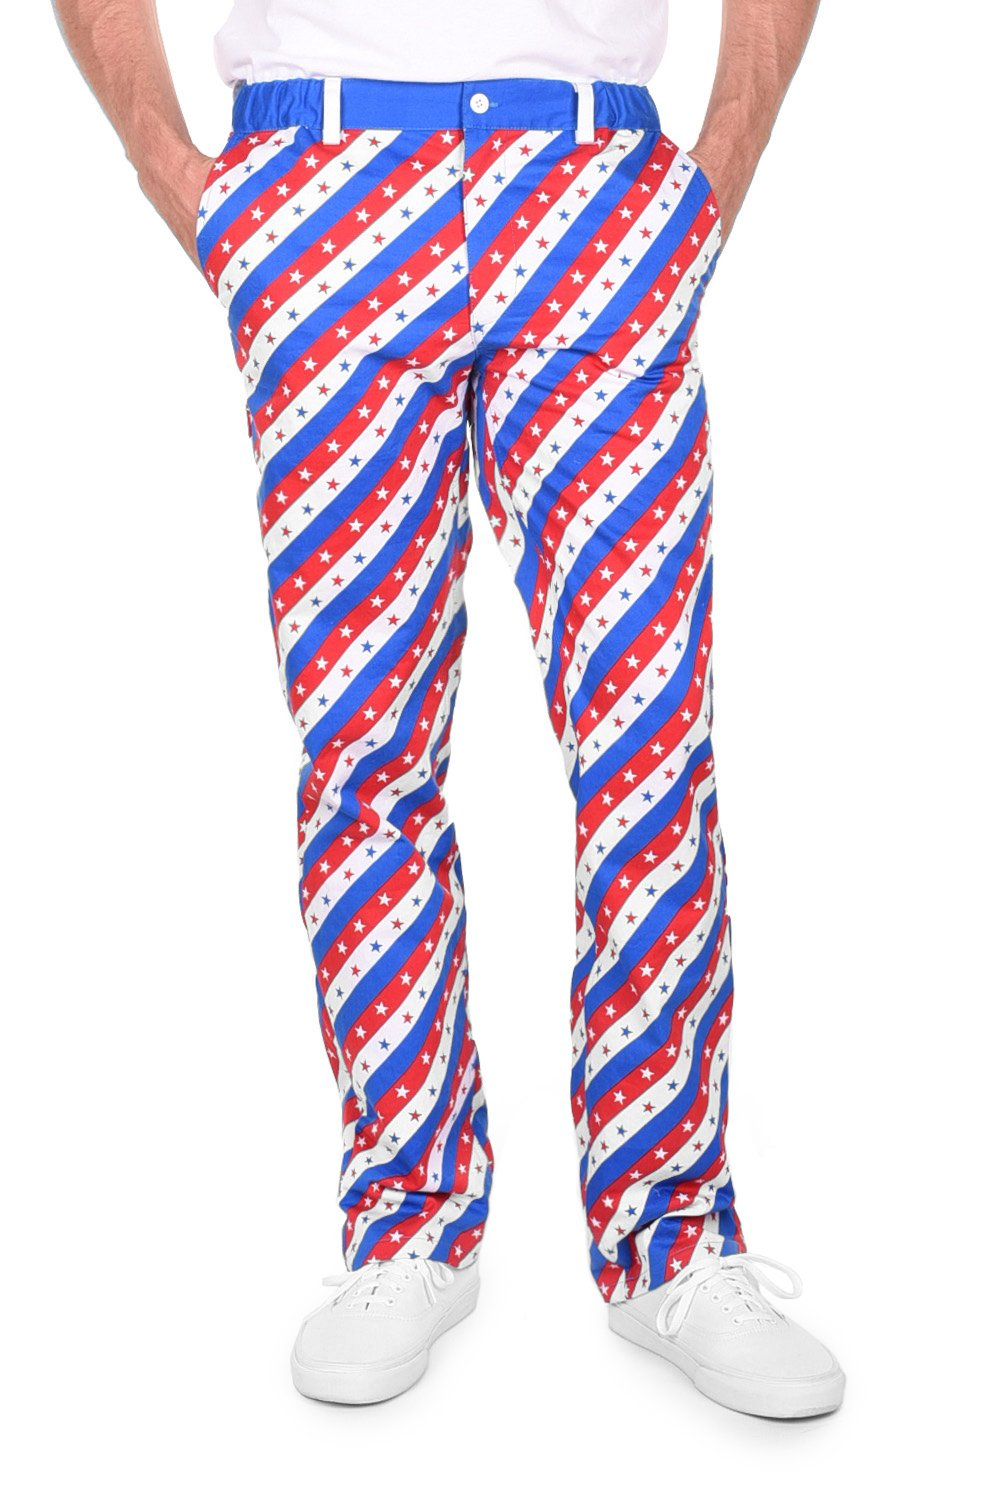 Tipsy Elves Men's Red White and Blue Patriotic USA Pants Bottoms (X-Large) by Tipsy Elves